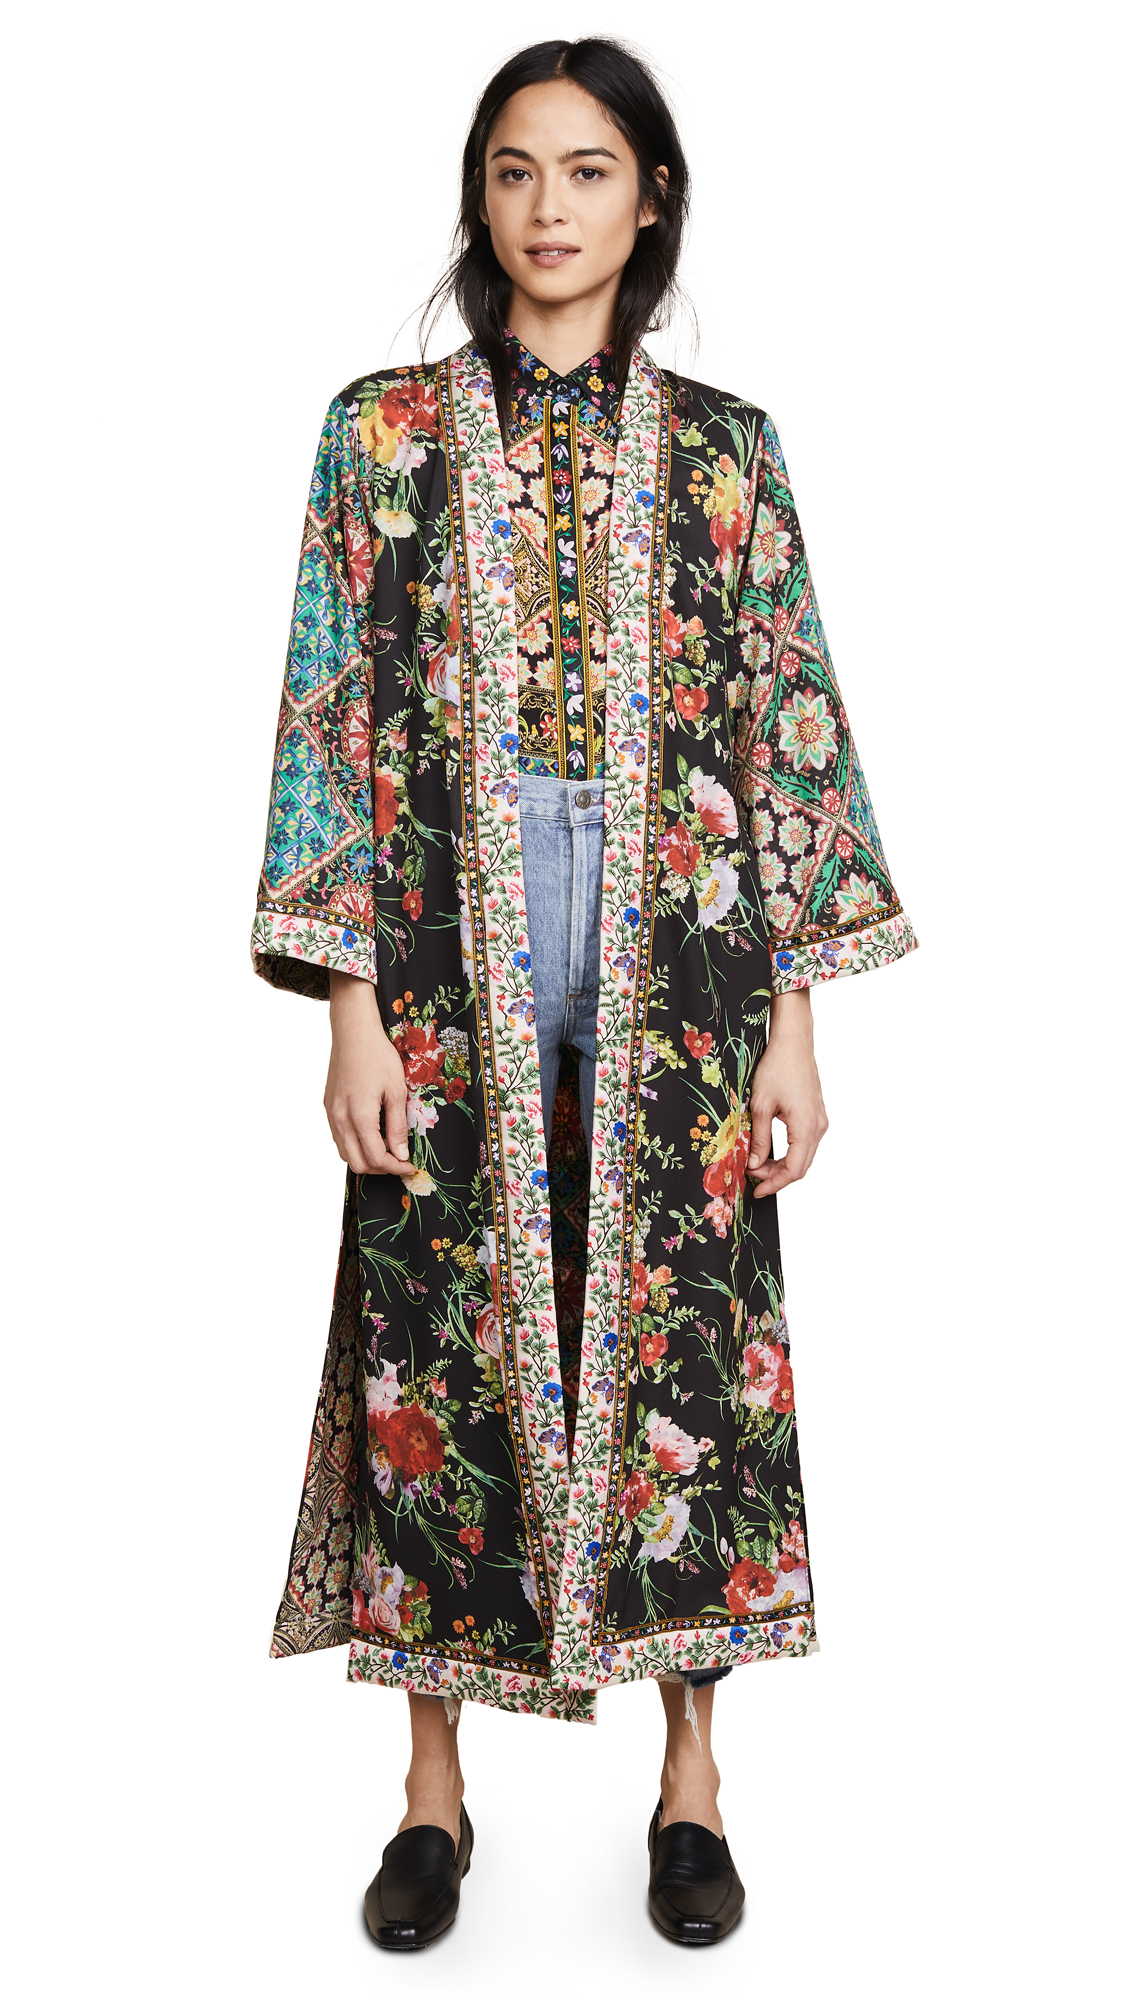 alice + olivia Lynn Long Kimono with Side Slits - Blooming Bouquet/Renzo Tile